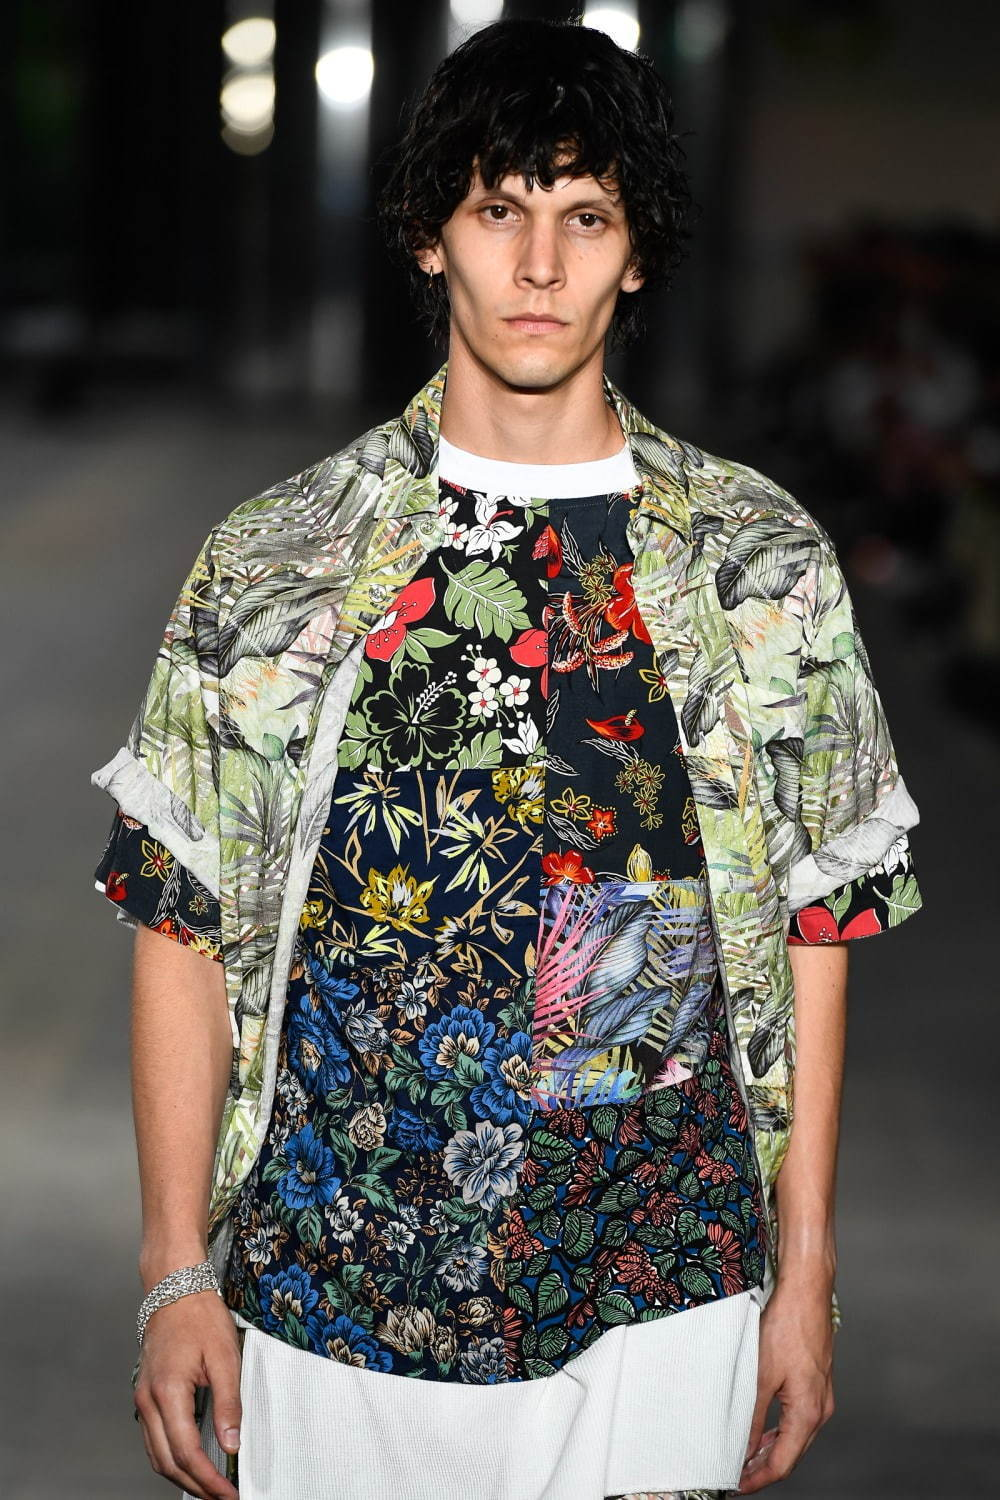 White Mountaineering - 2020 S/S Collection._f0020773_1843209.jpg